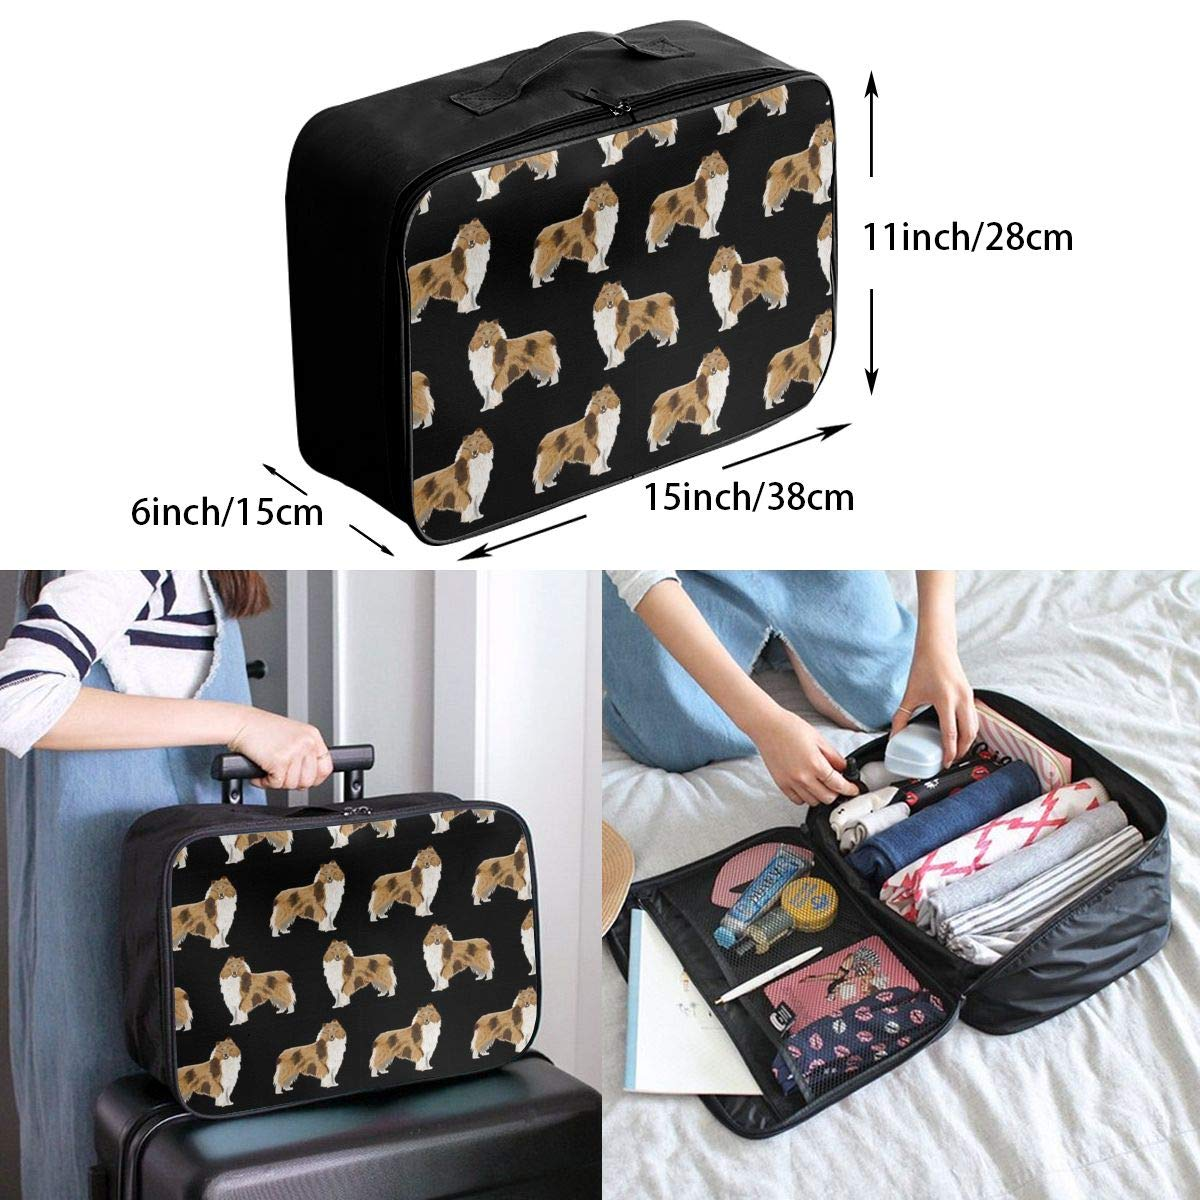 Women /& Men Foldable Travel Duffel Bag Rough Collie Dog For Luggage Gym Sports